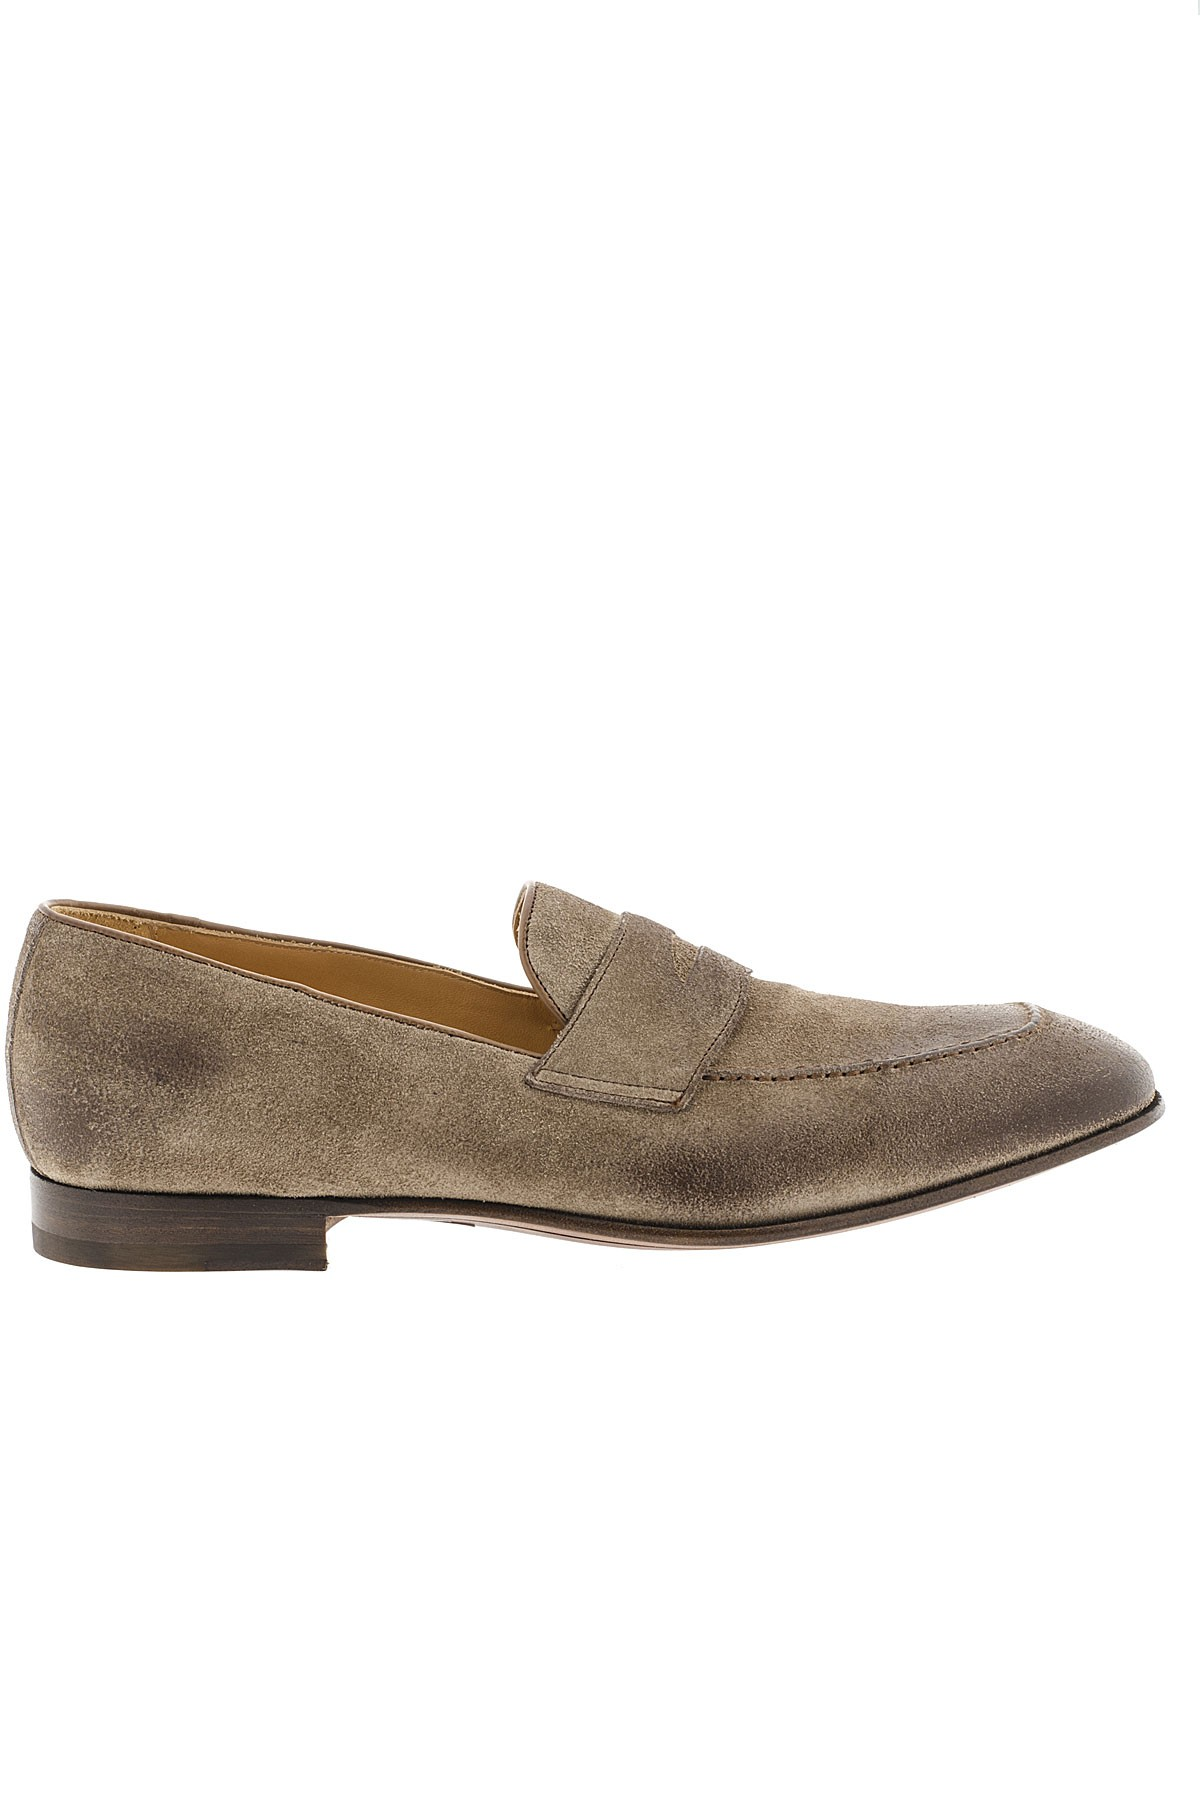 MIGLIORE Taupe beige shoes for man S/S 16